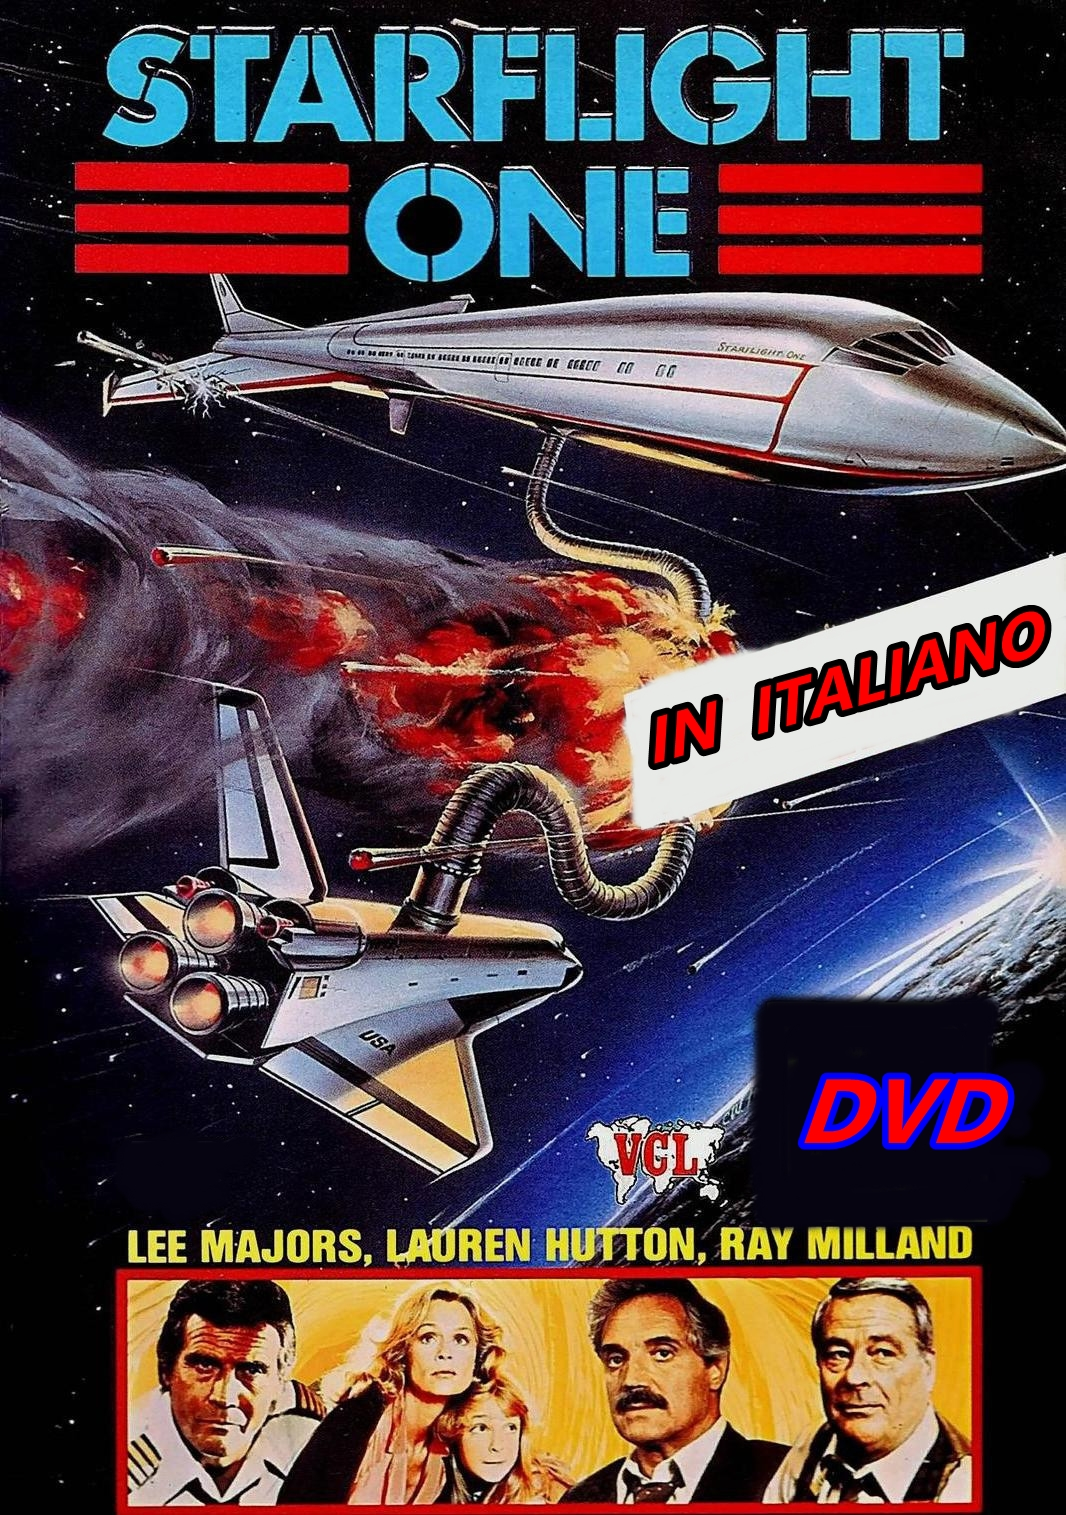 STARFLIGHT_ONE_DVD_1983__IN_ITALIANO__Jerry_Jameson_Lee_Majors_Hal_Linden_Lauren_Hutton